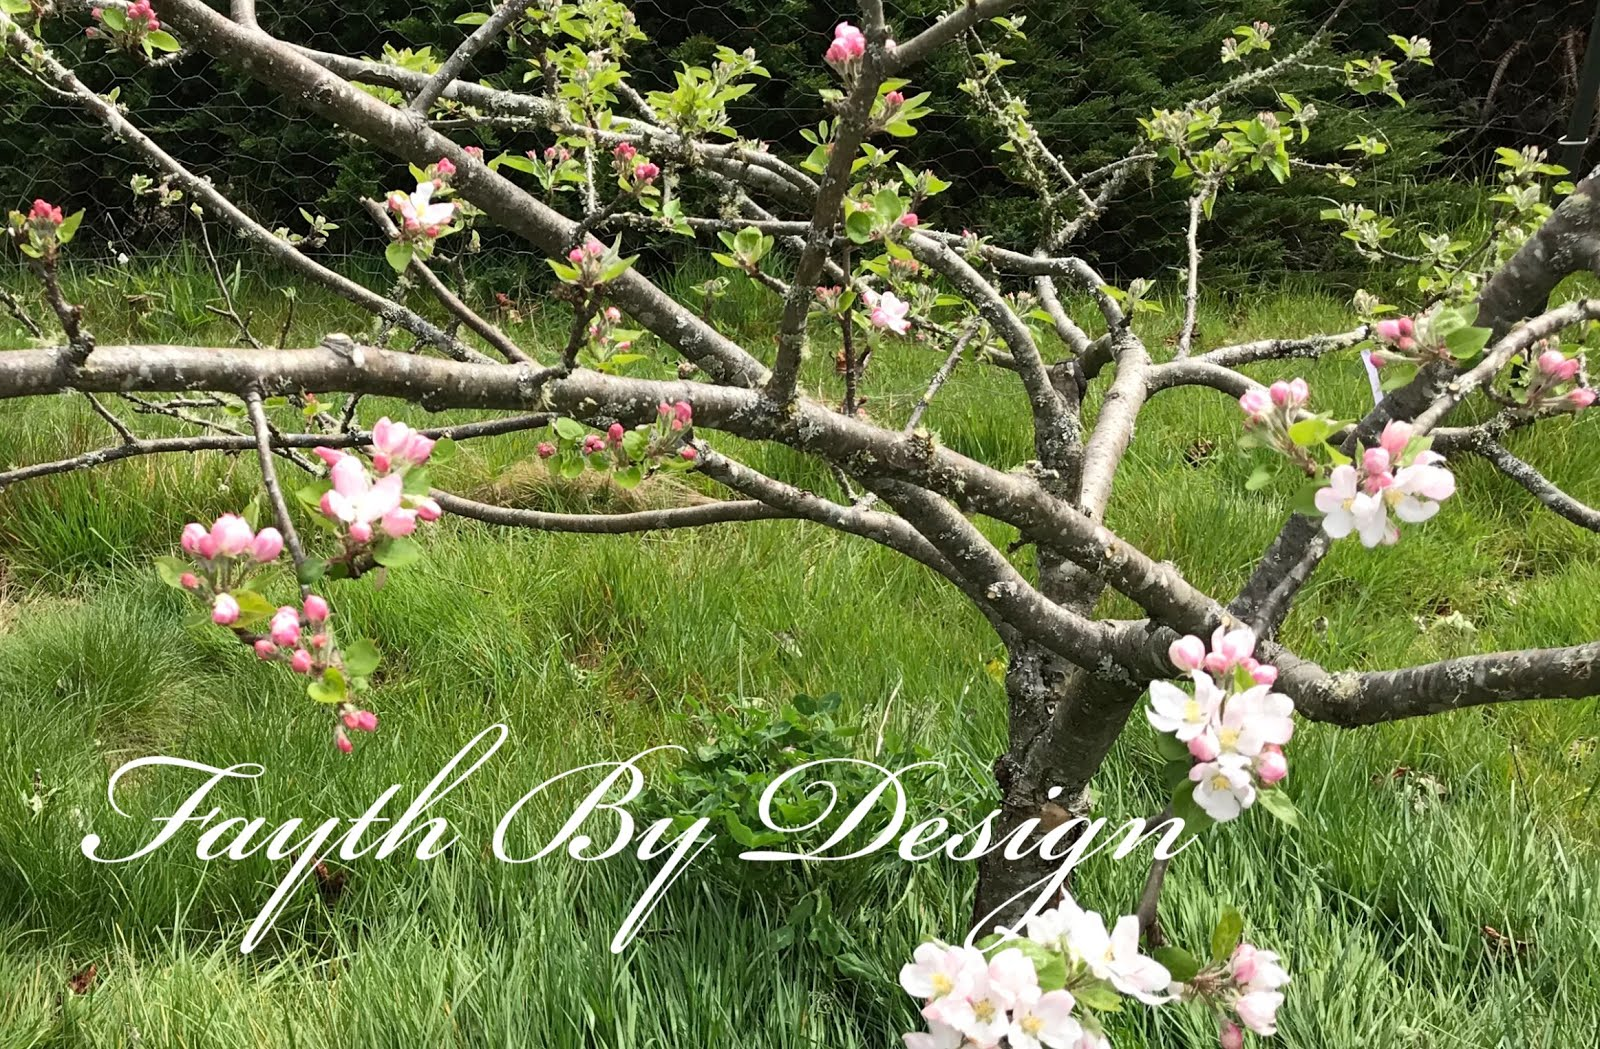 Fayth by Design